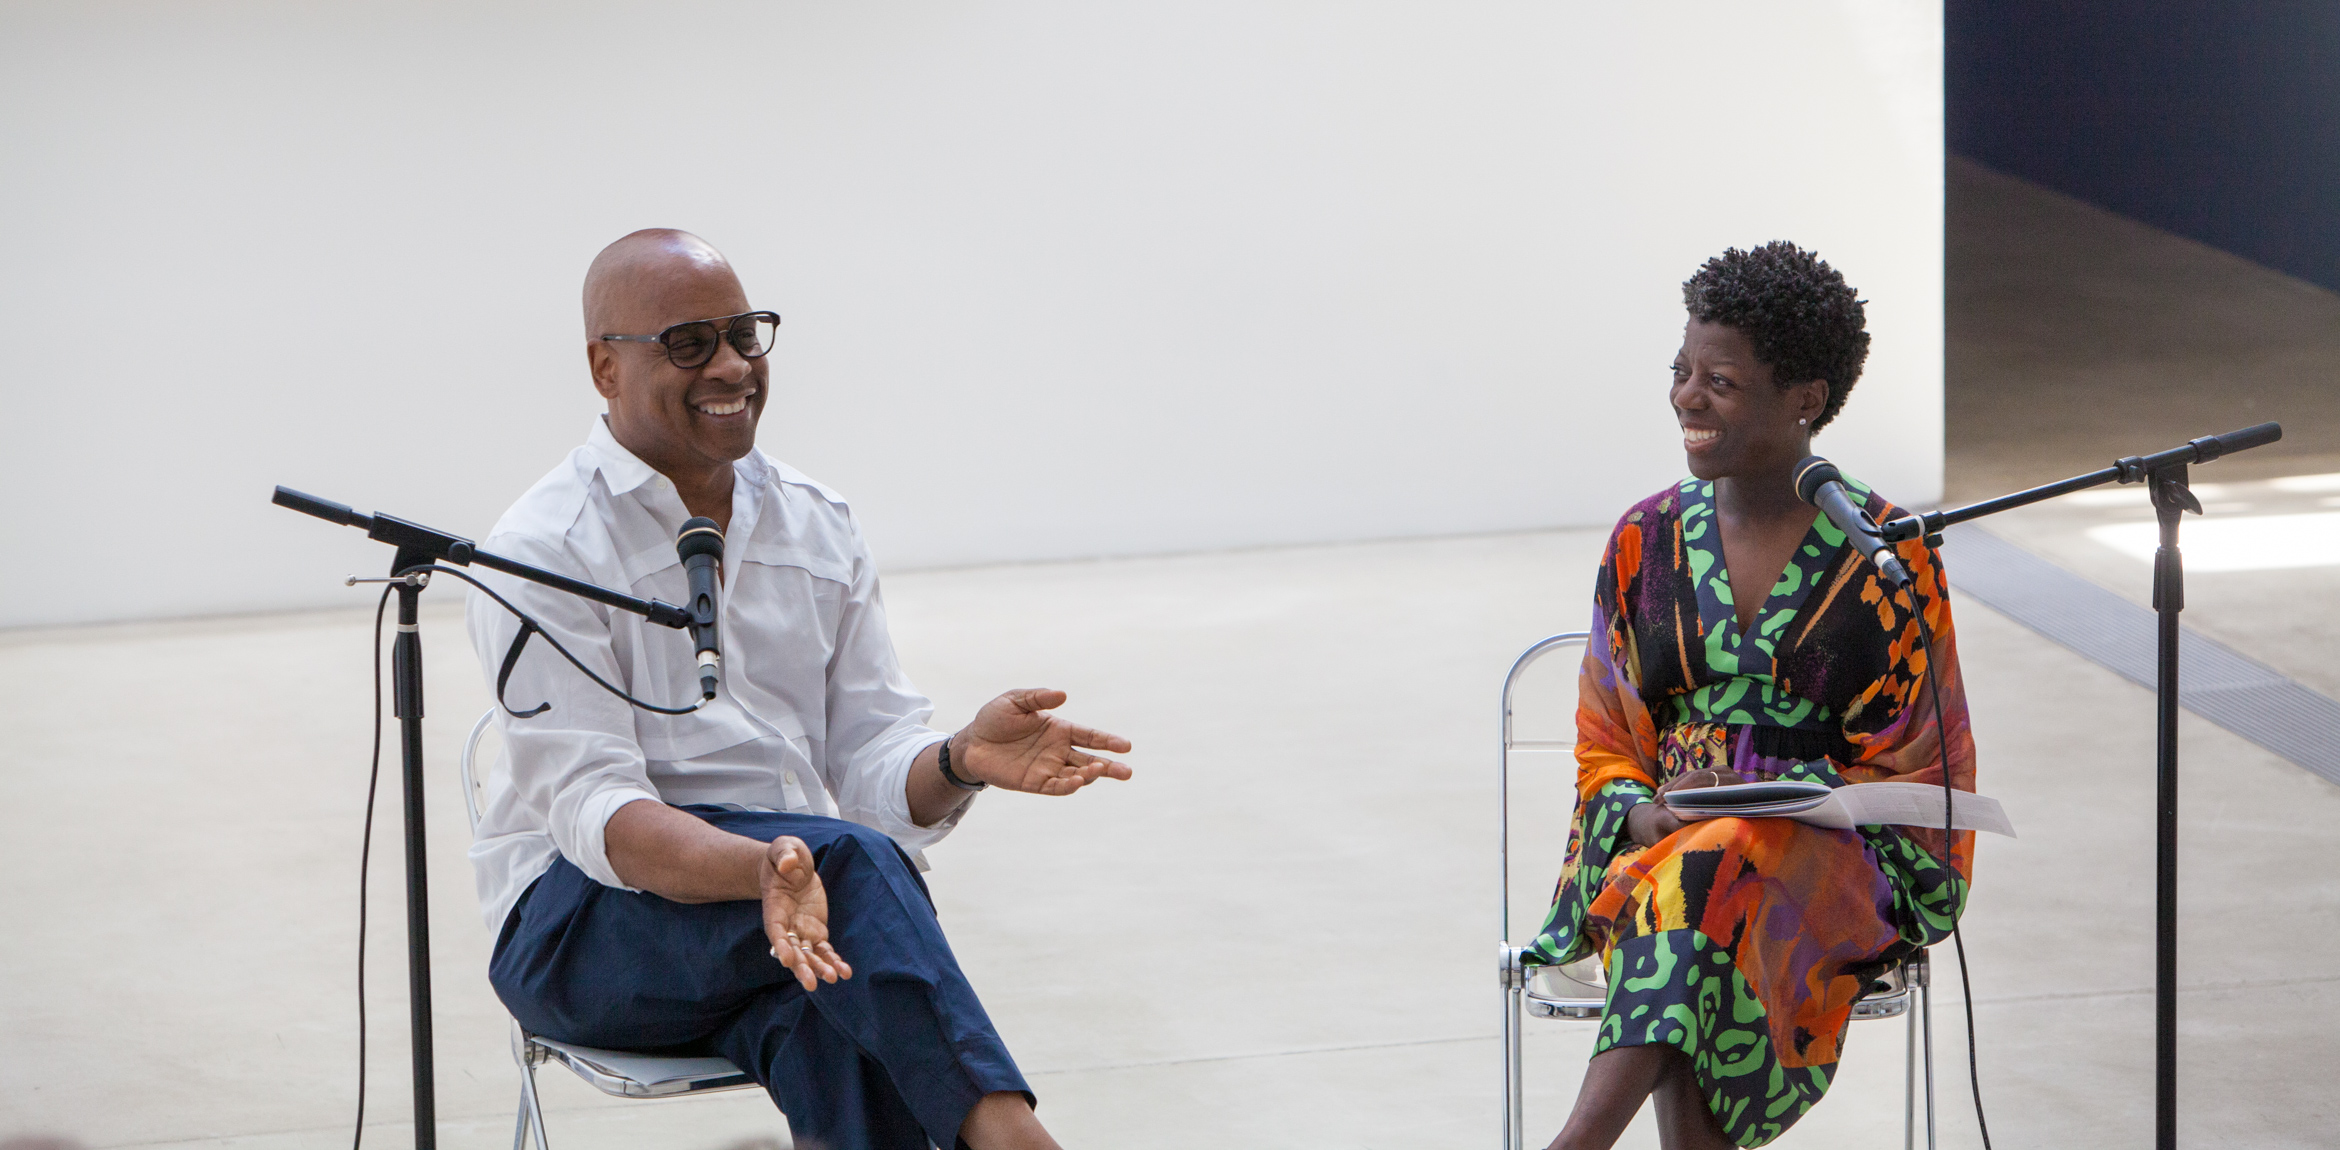 Glenn Ligon and Thelma Golden converse in front of microphones in the Lower Main Gallery.